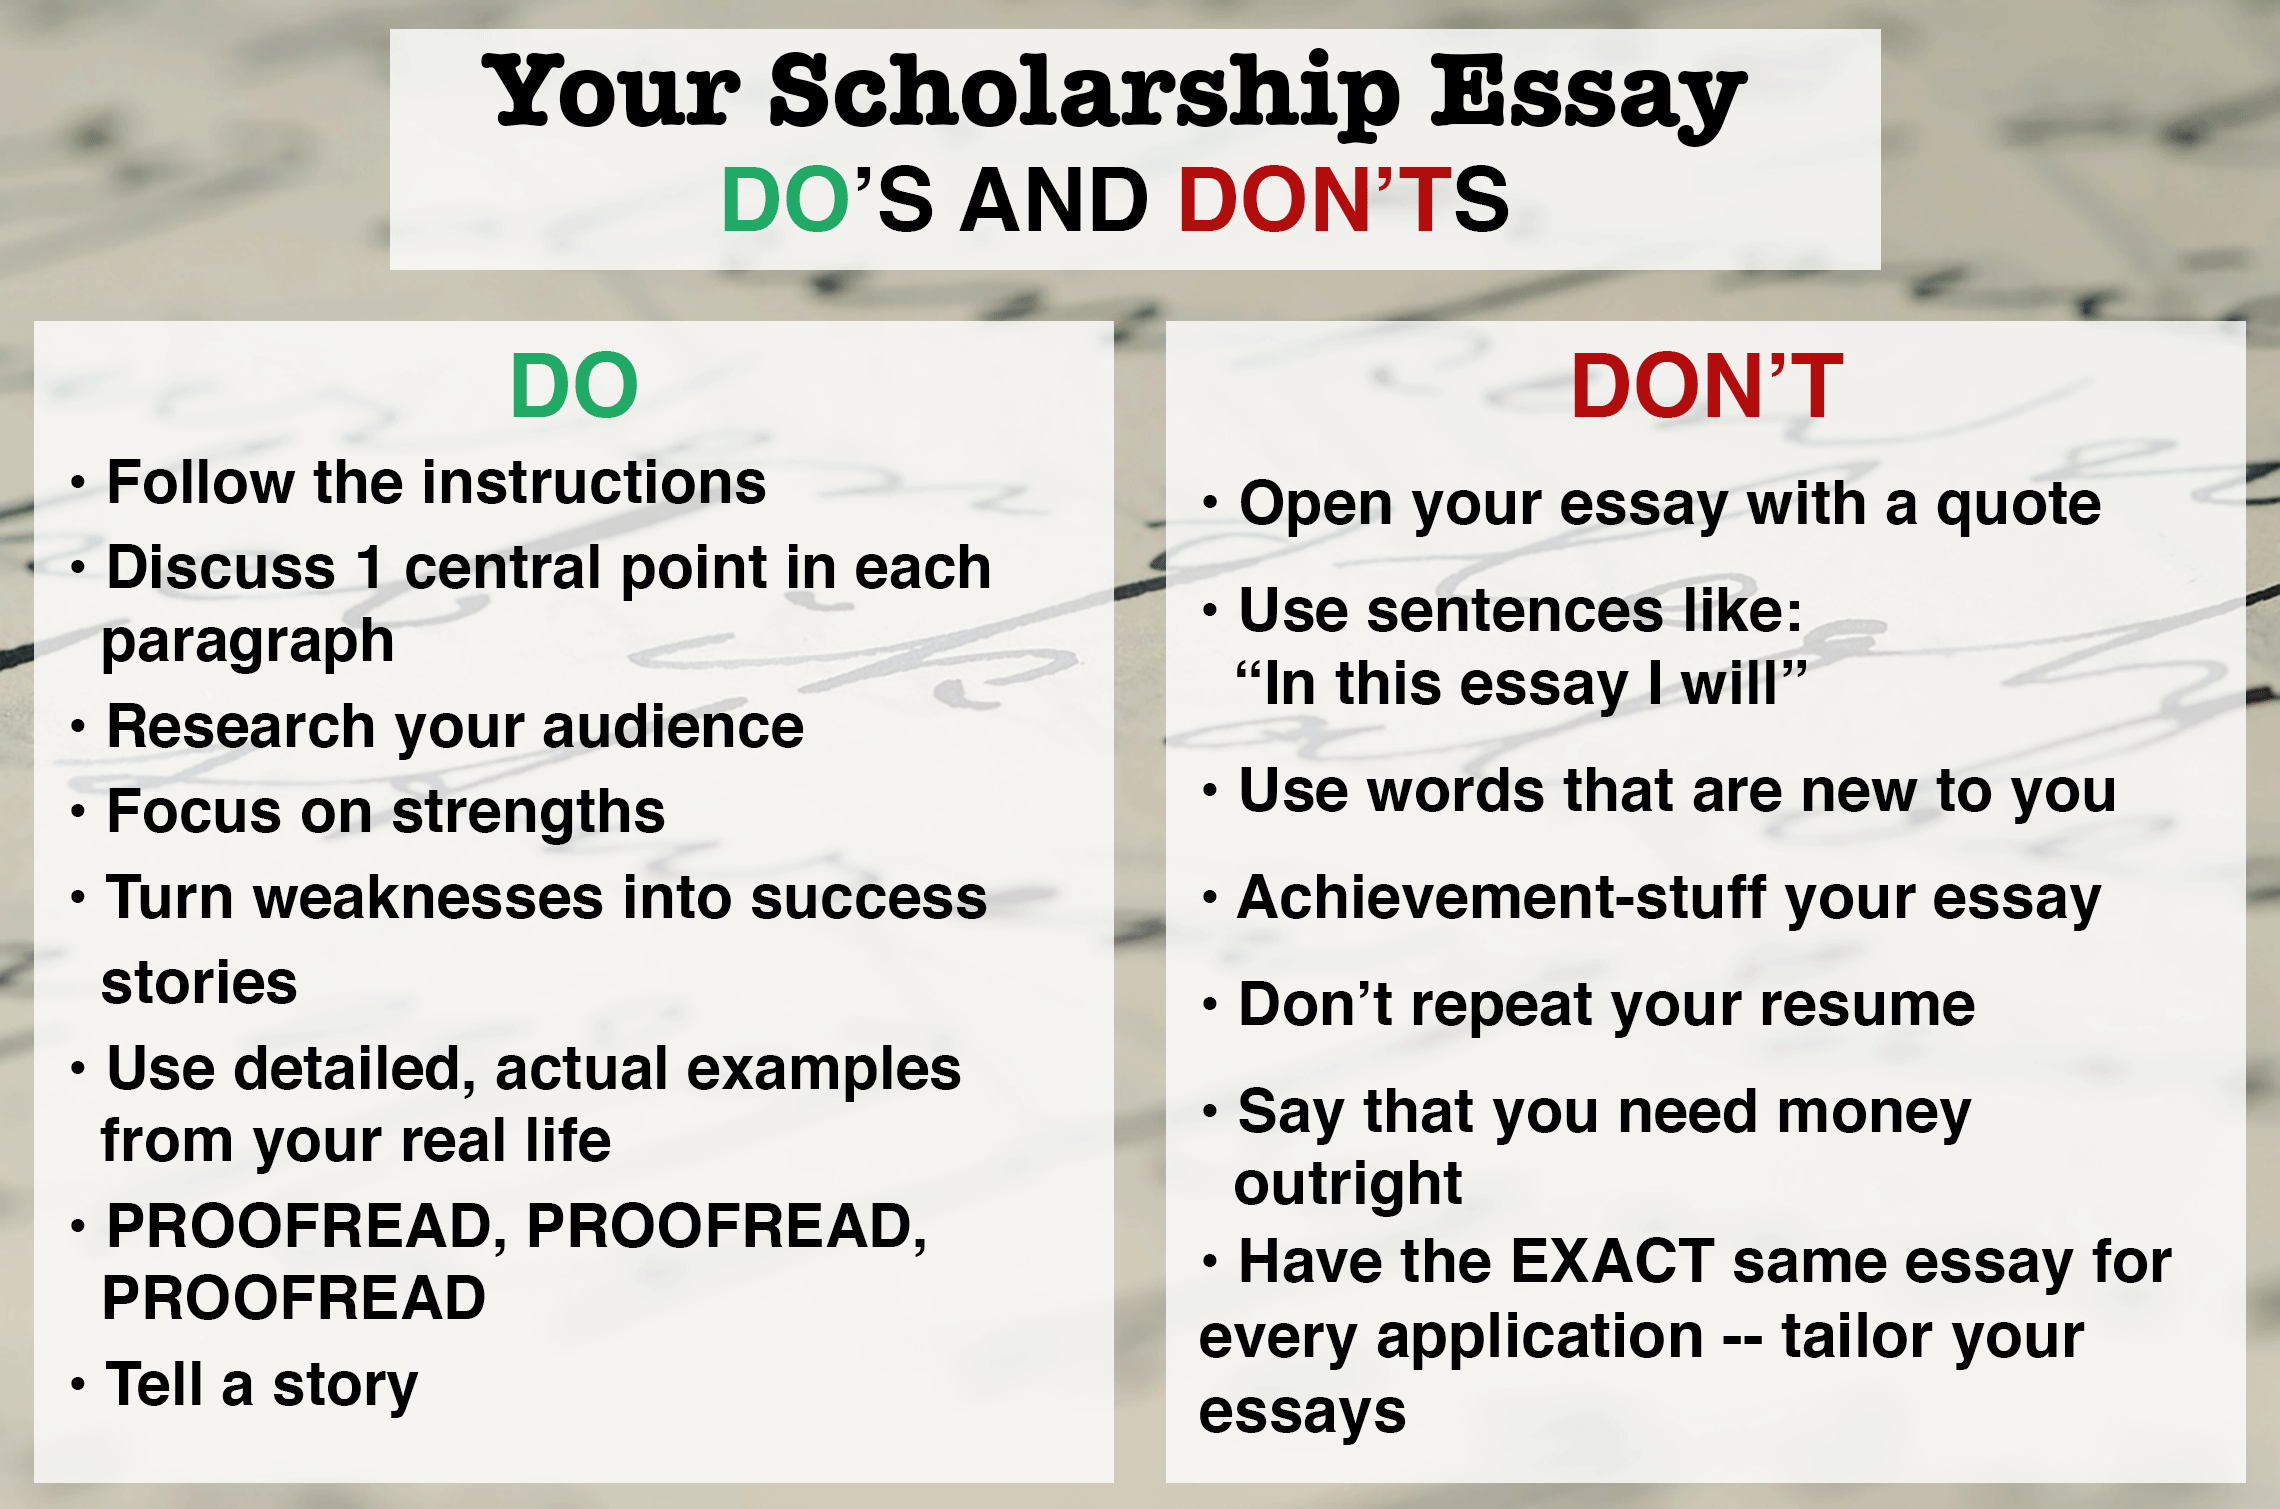 how to write a winning scholarship essay in steps dosdontsscholes